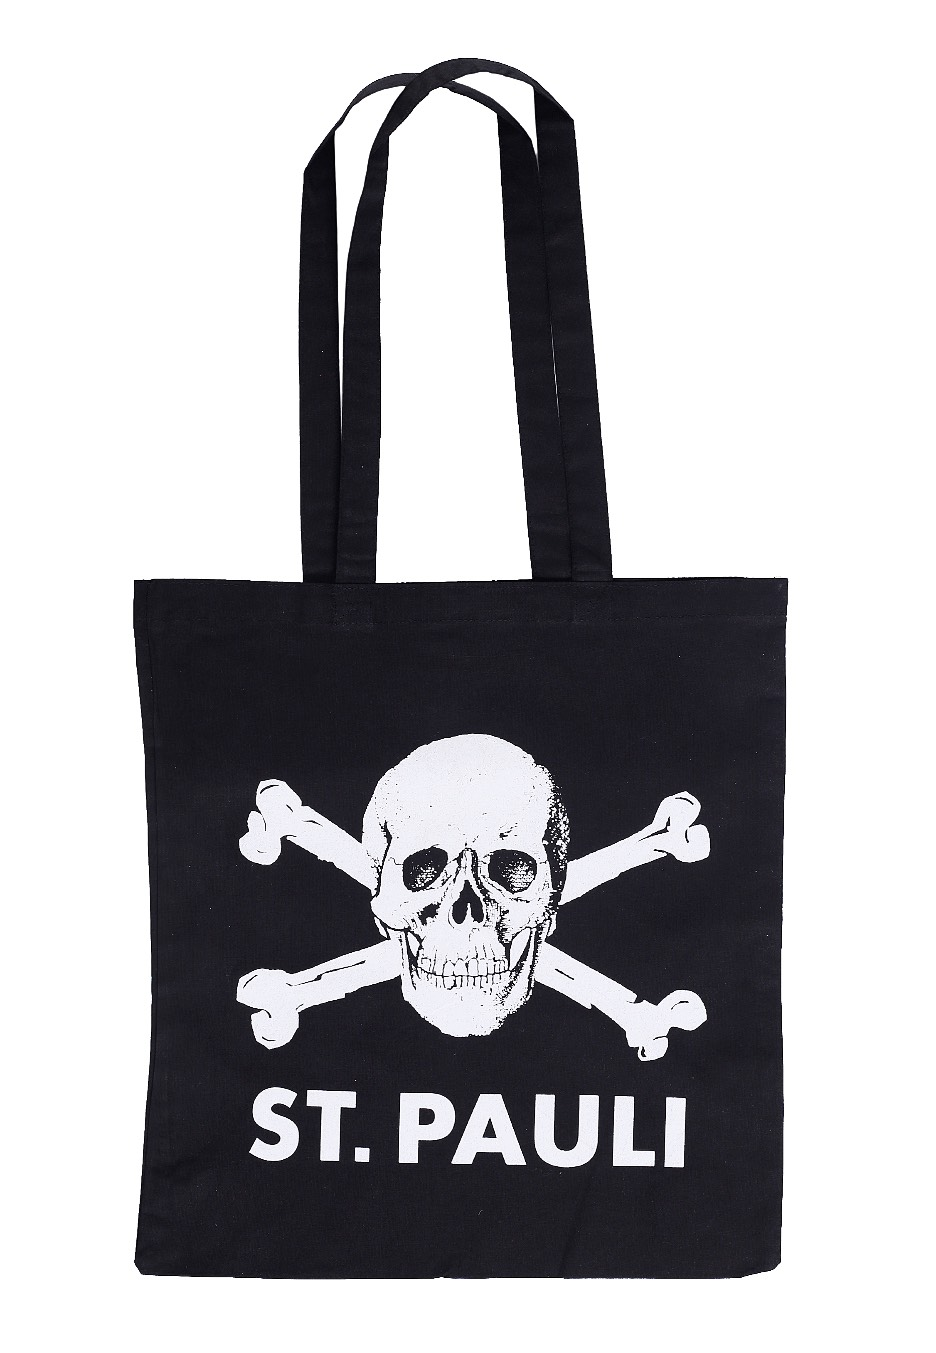 Lieblings FC St. Pauli - Totenkopf - Tote Bag - Official Merchandise Shop @RL_92